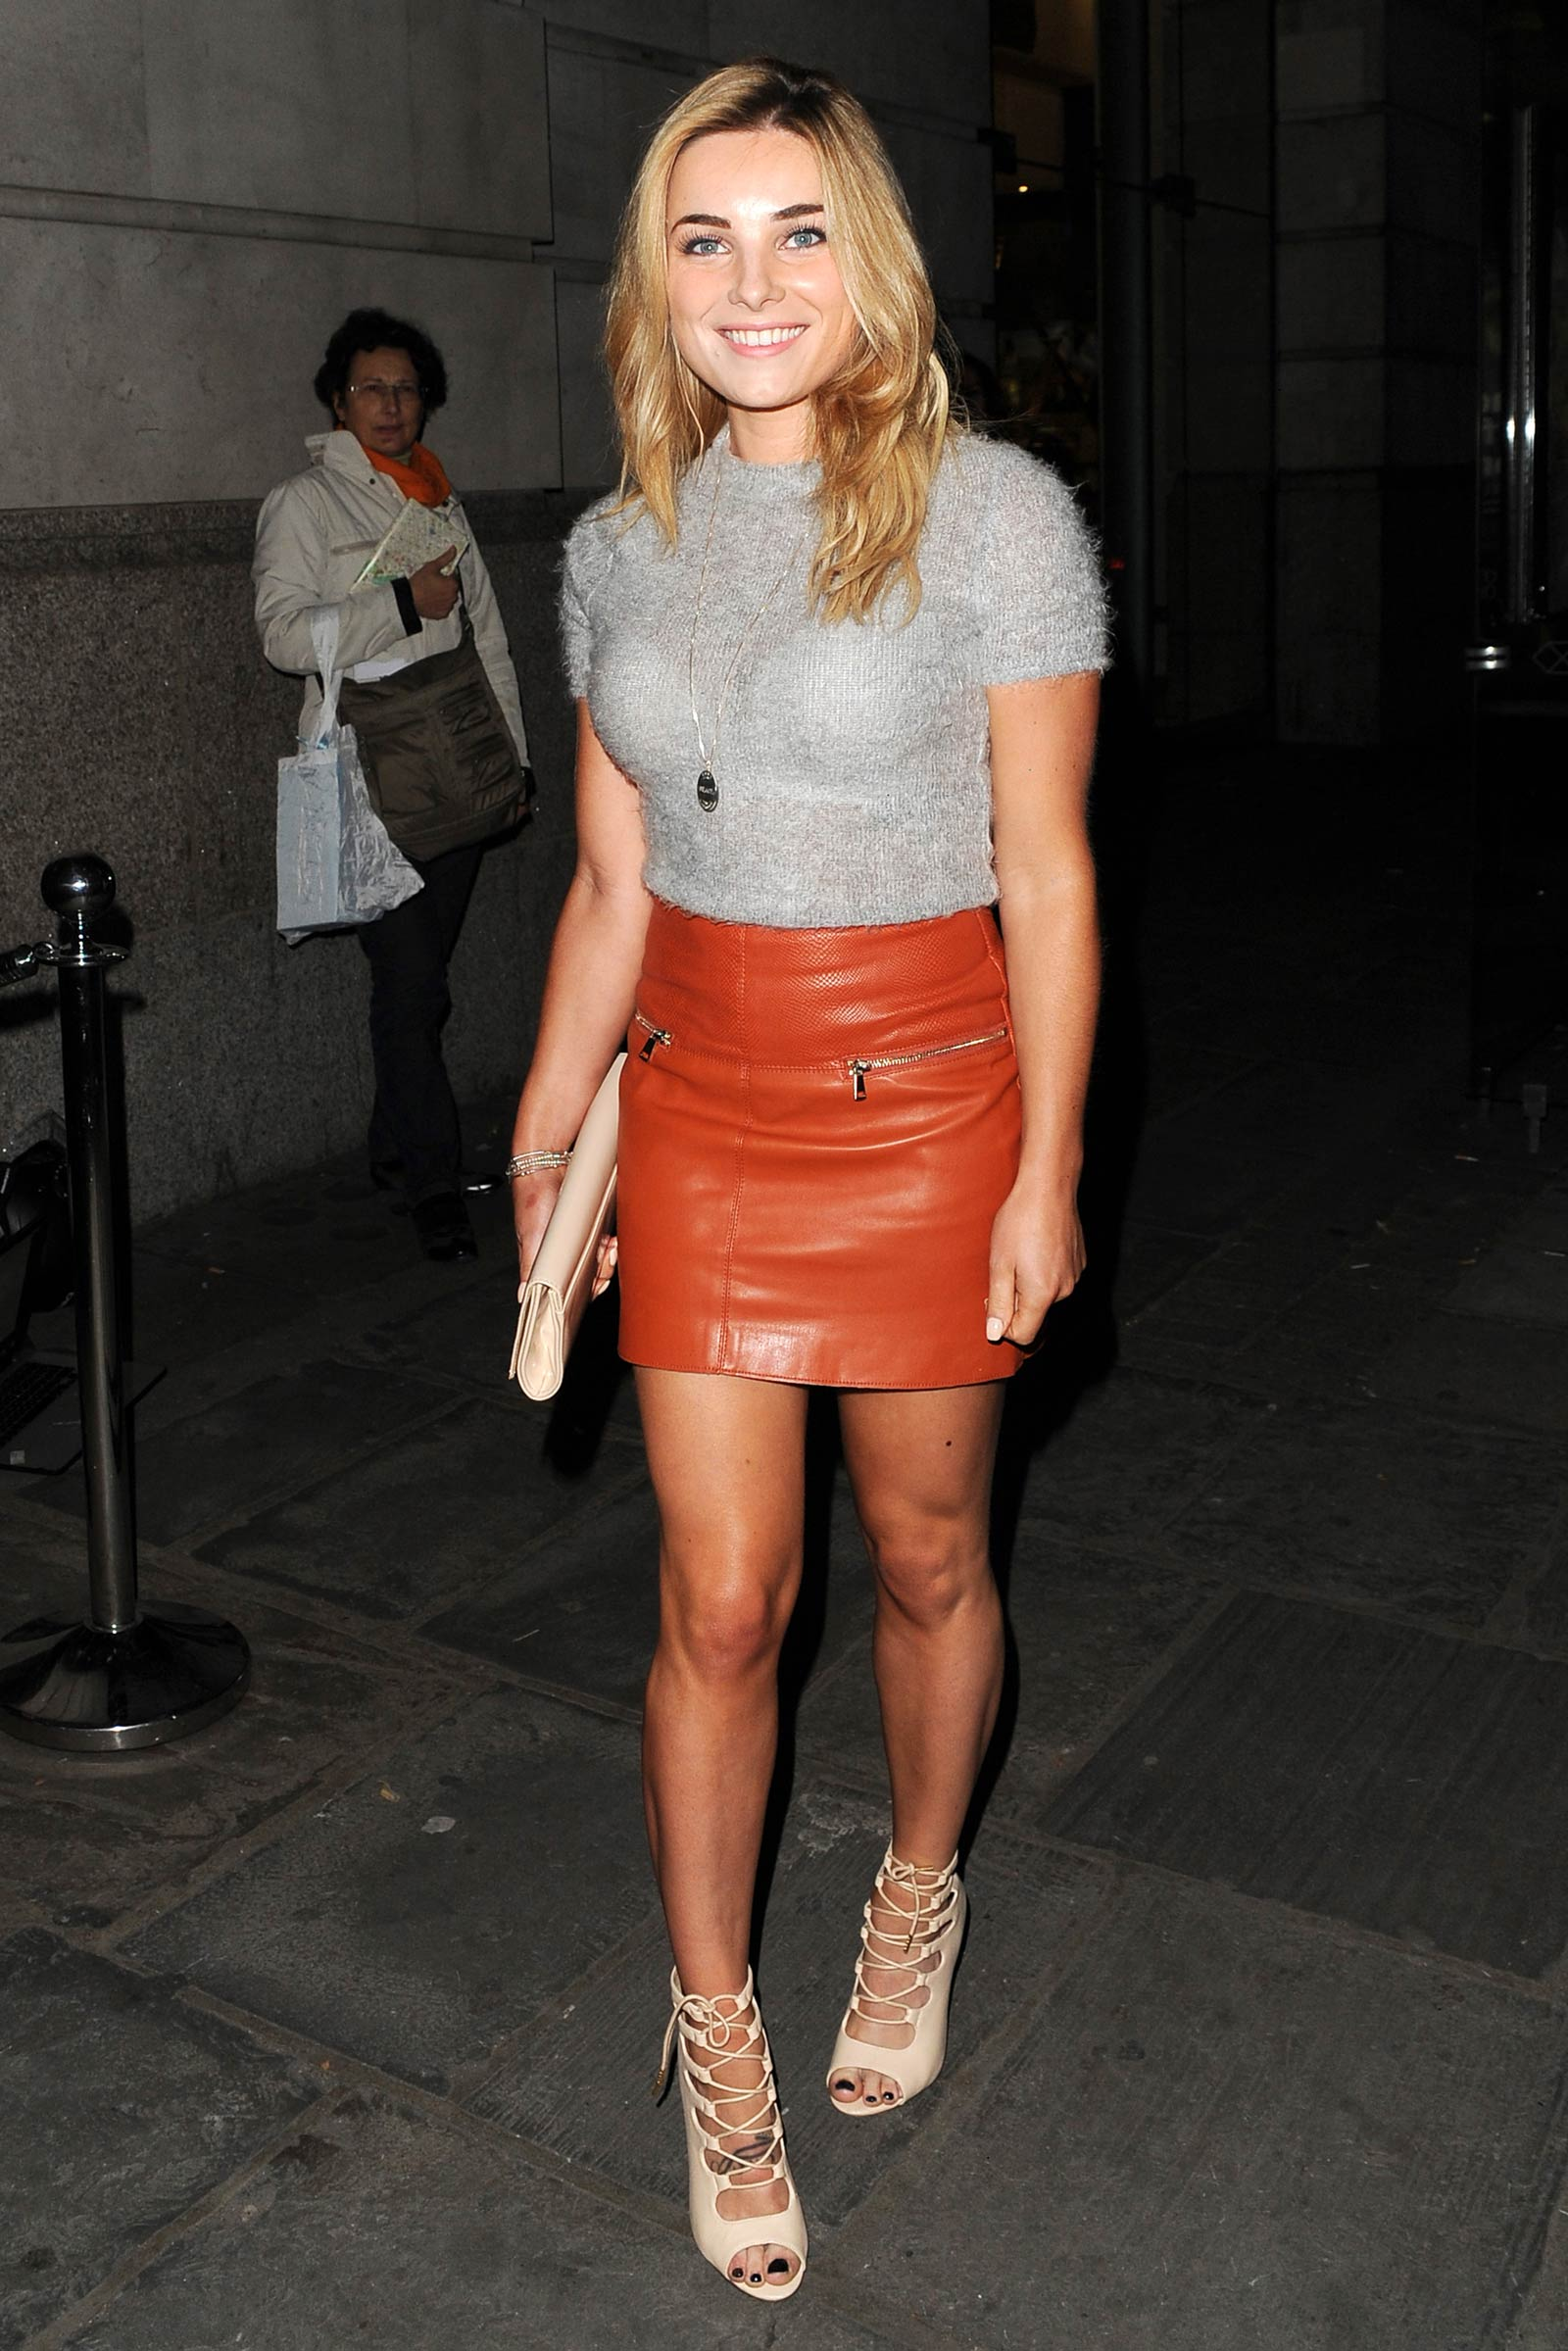 Sian Welby out & about in London